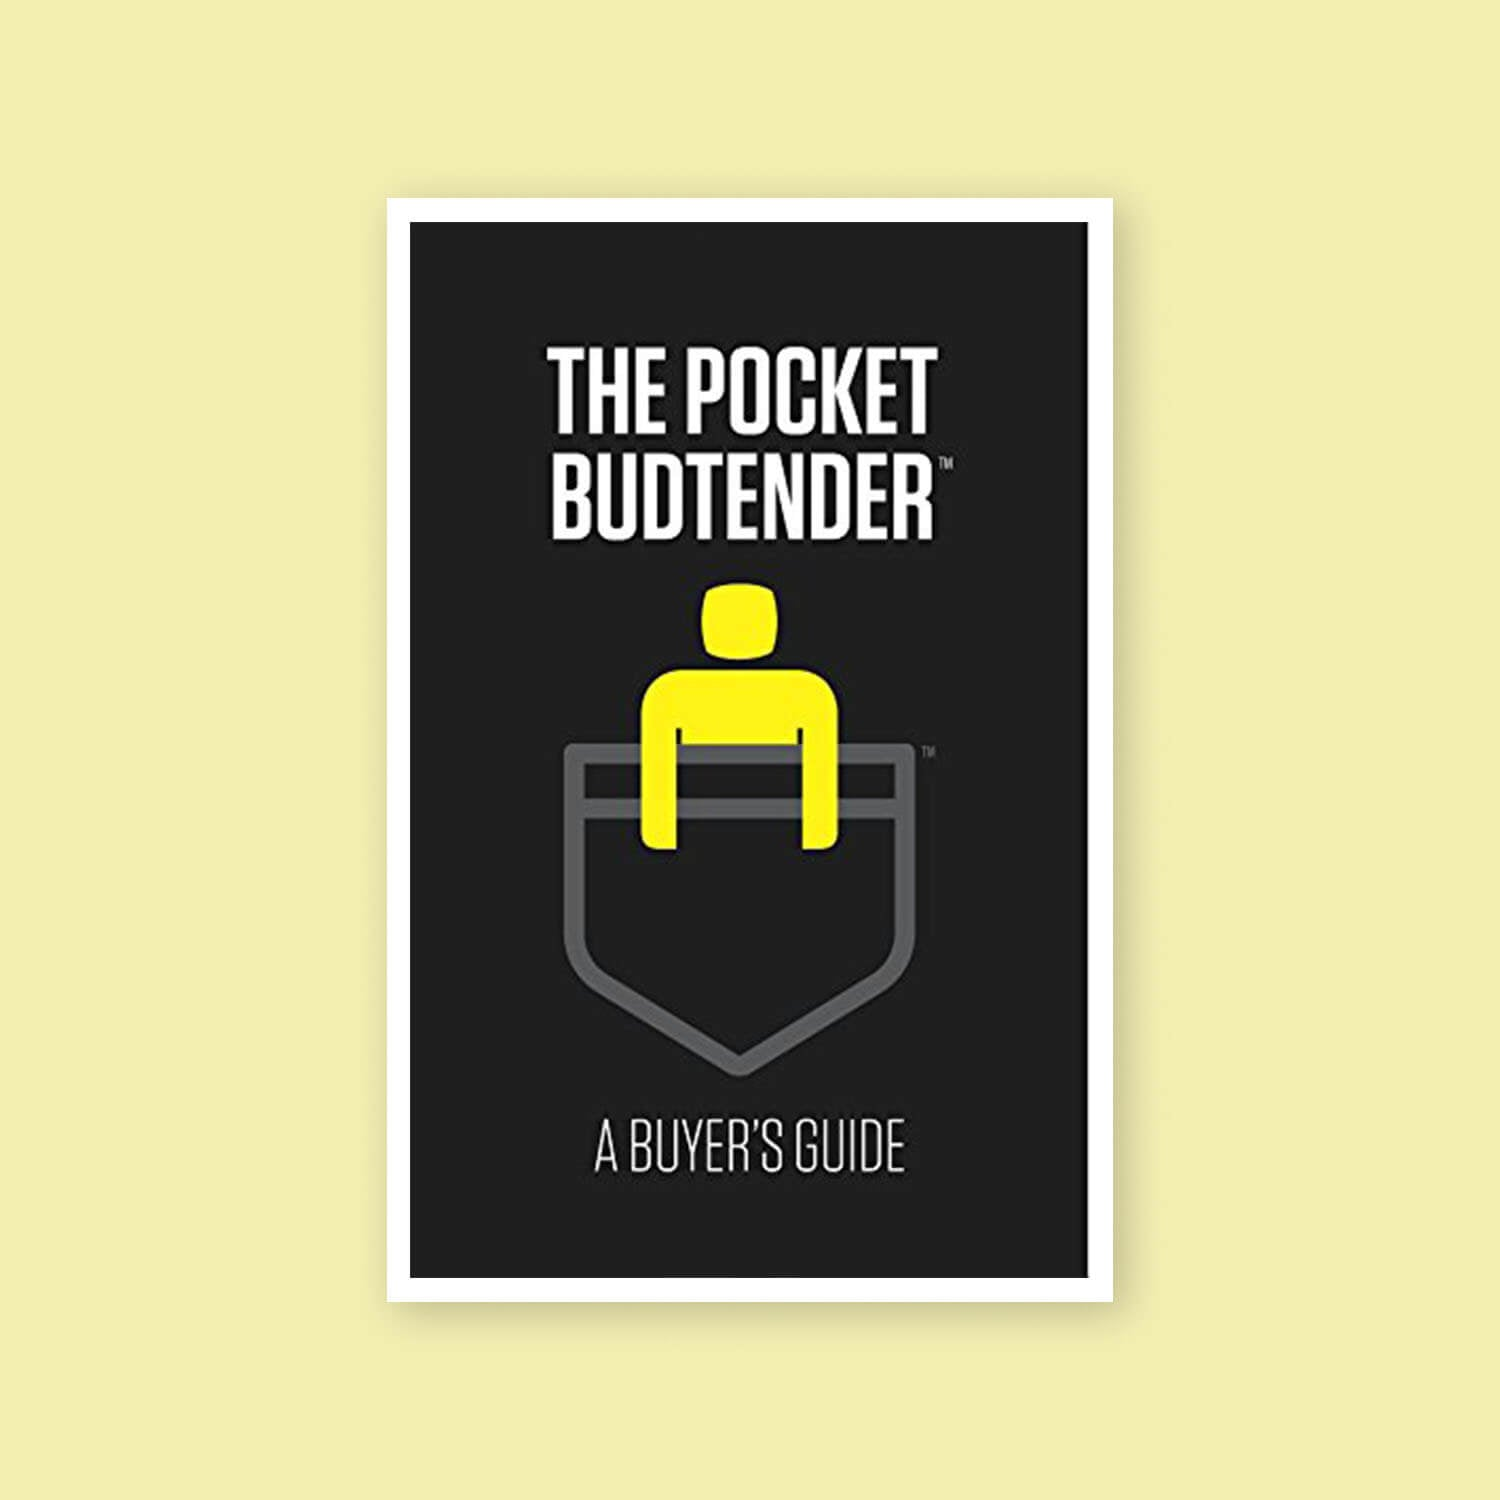 The Pocket Budtender